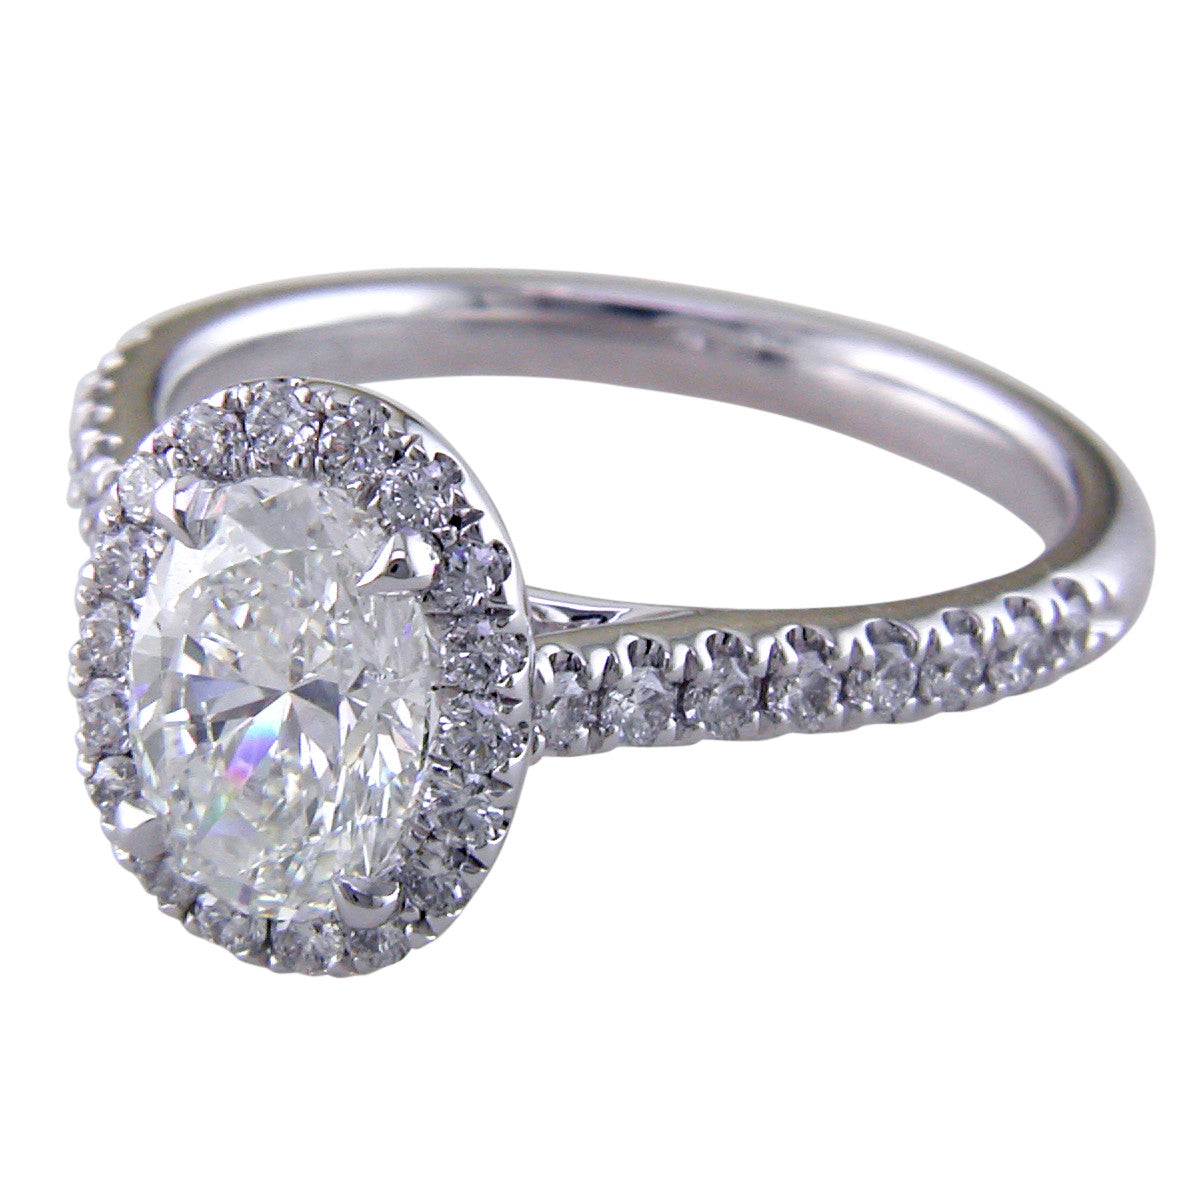 Oval Brilliant 1.30 carat Forevermark Halo Engagement Ring Platinum stamford bridal jewelry